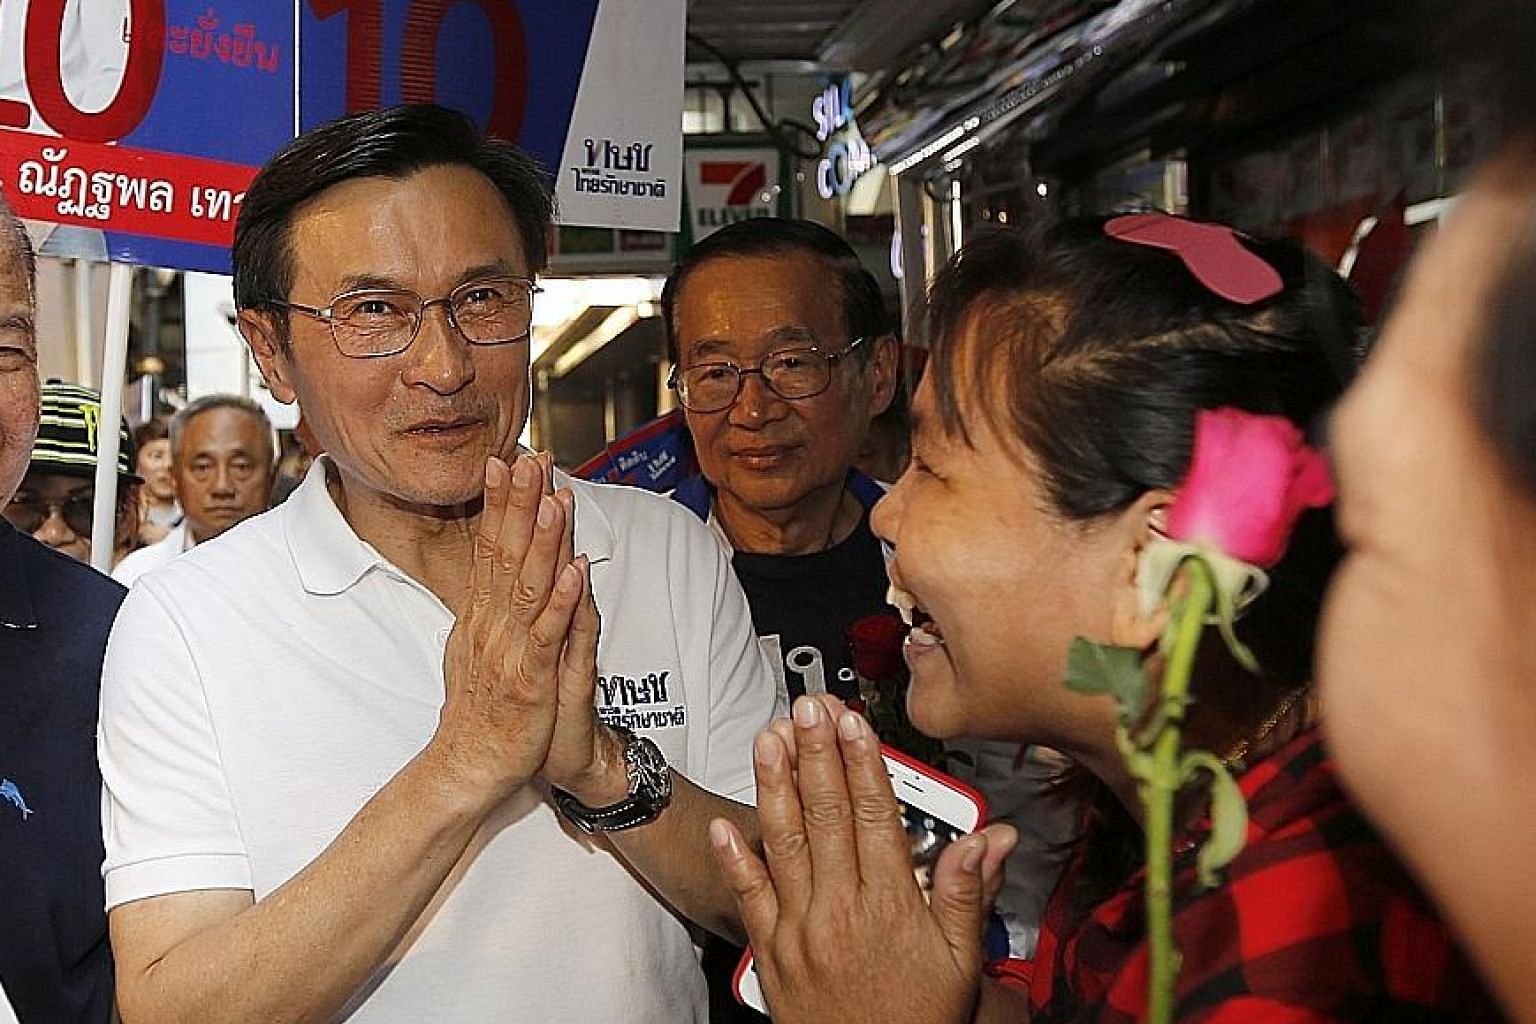 Thai Raksa Chart Party's Chaturon Chaisang (in white T-shirt) greeting people during a campaign event for the country's upcoming general election.